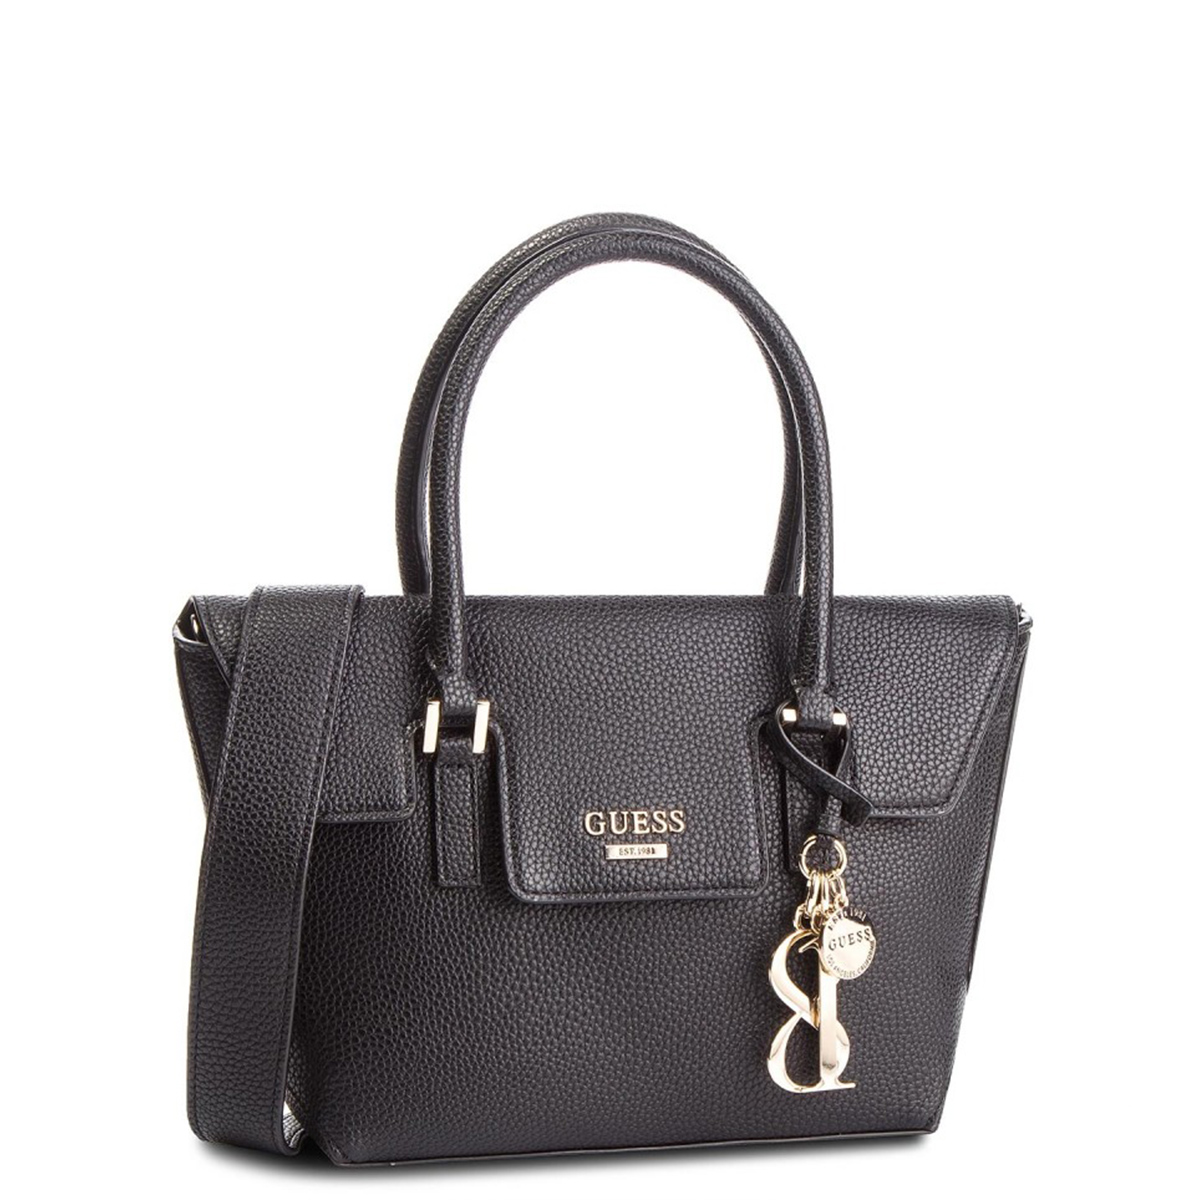 WEST SIDE SMALL FLAP SATCHEL BLA